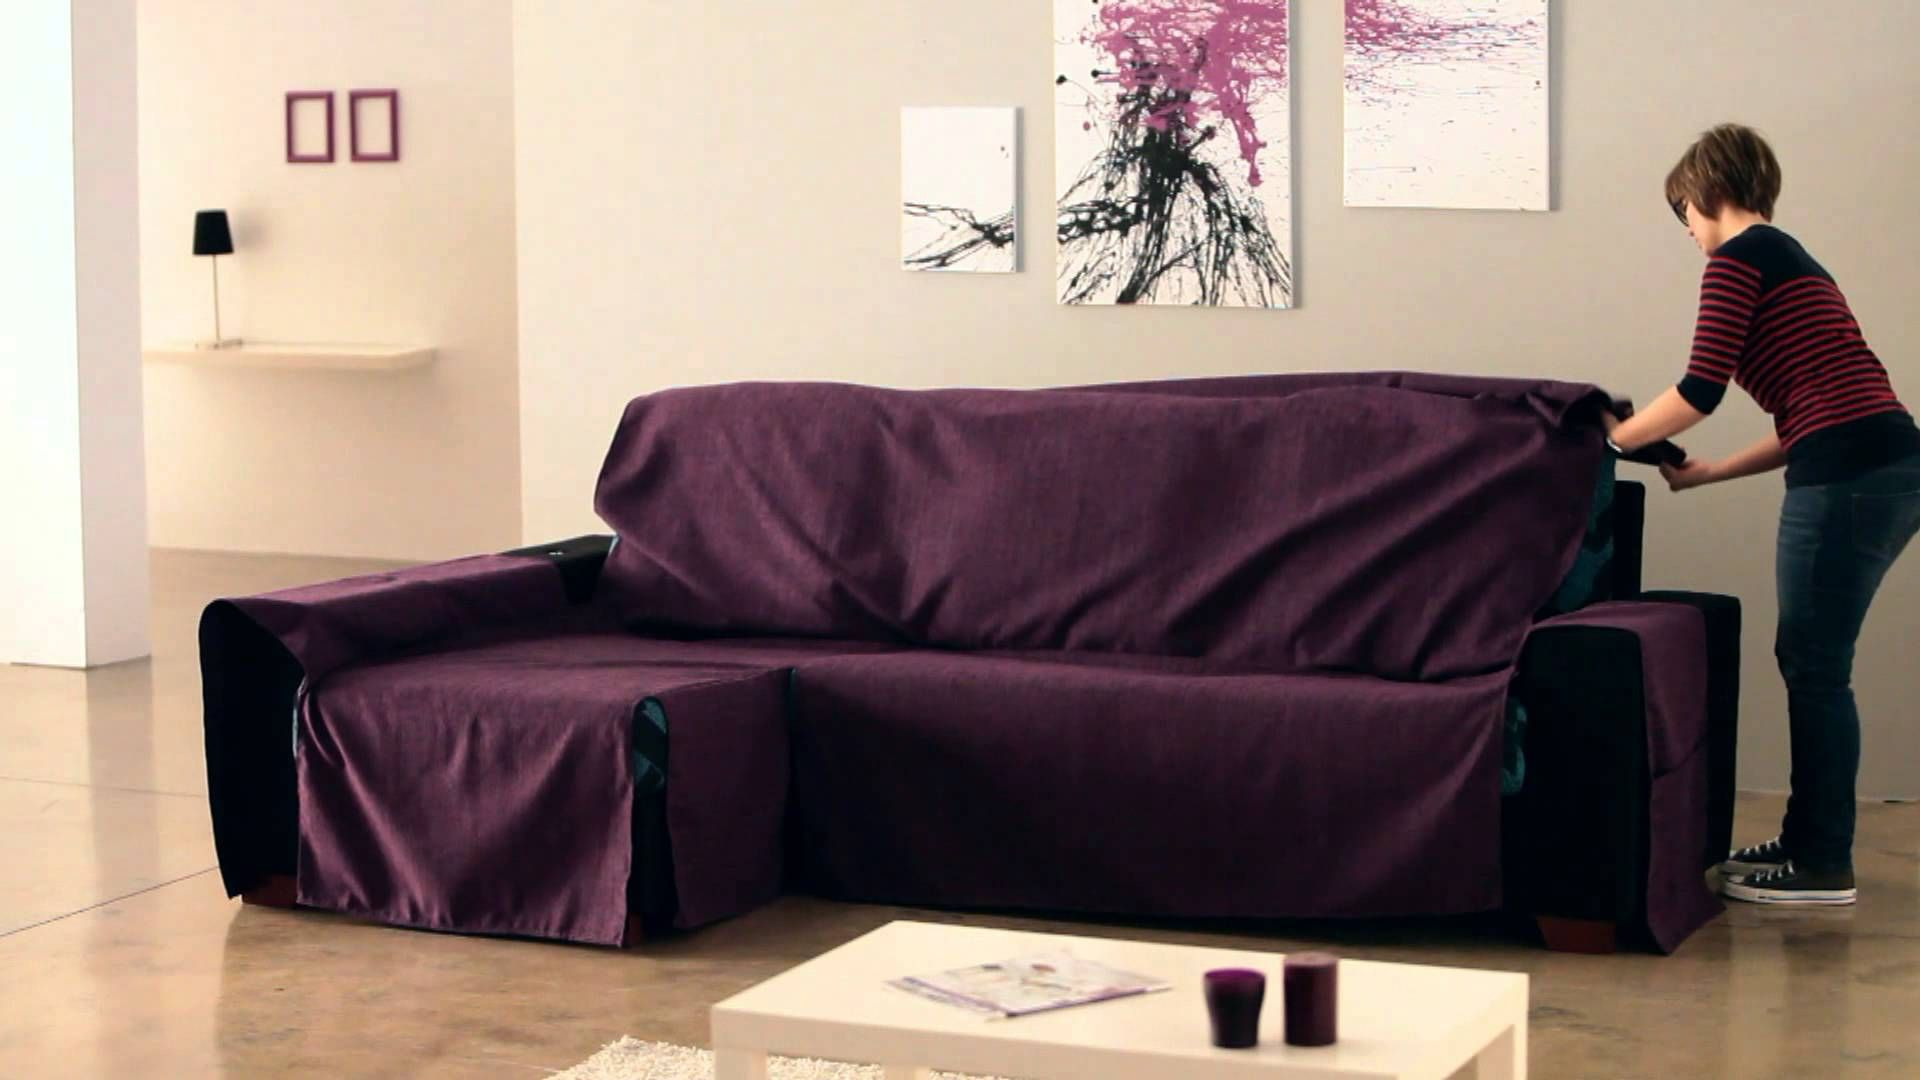 How To Put An Universal Chaise Sofa Covers Sofa Covers Chaise